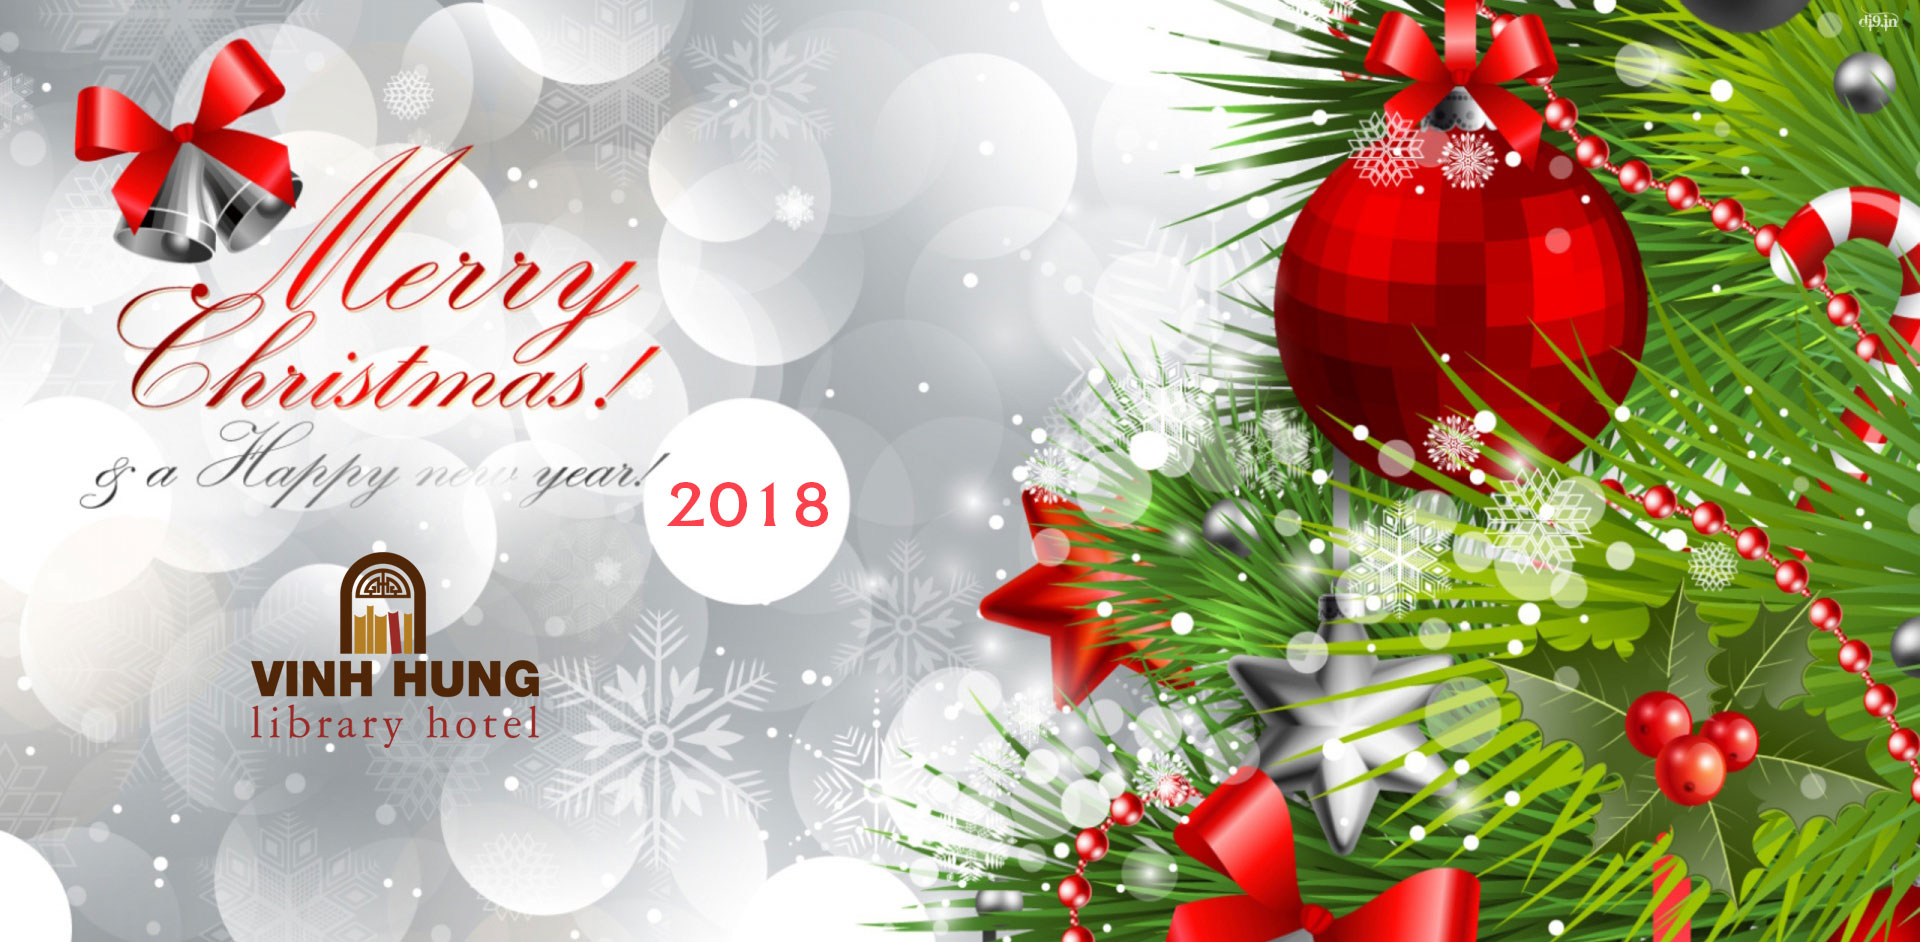 Merry-Christmas-and-Happy-New-Year-2018-Vinh-Hung-library-hotel